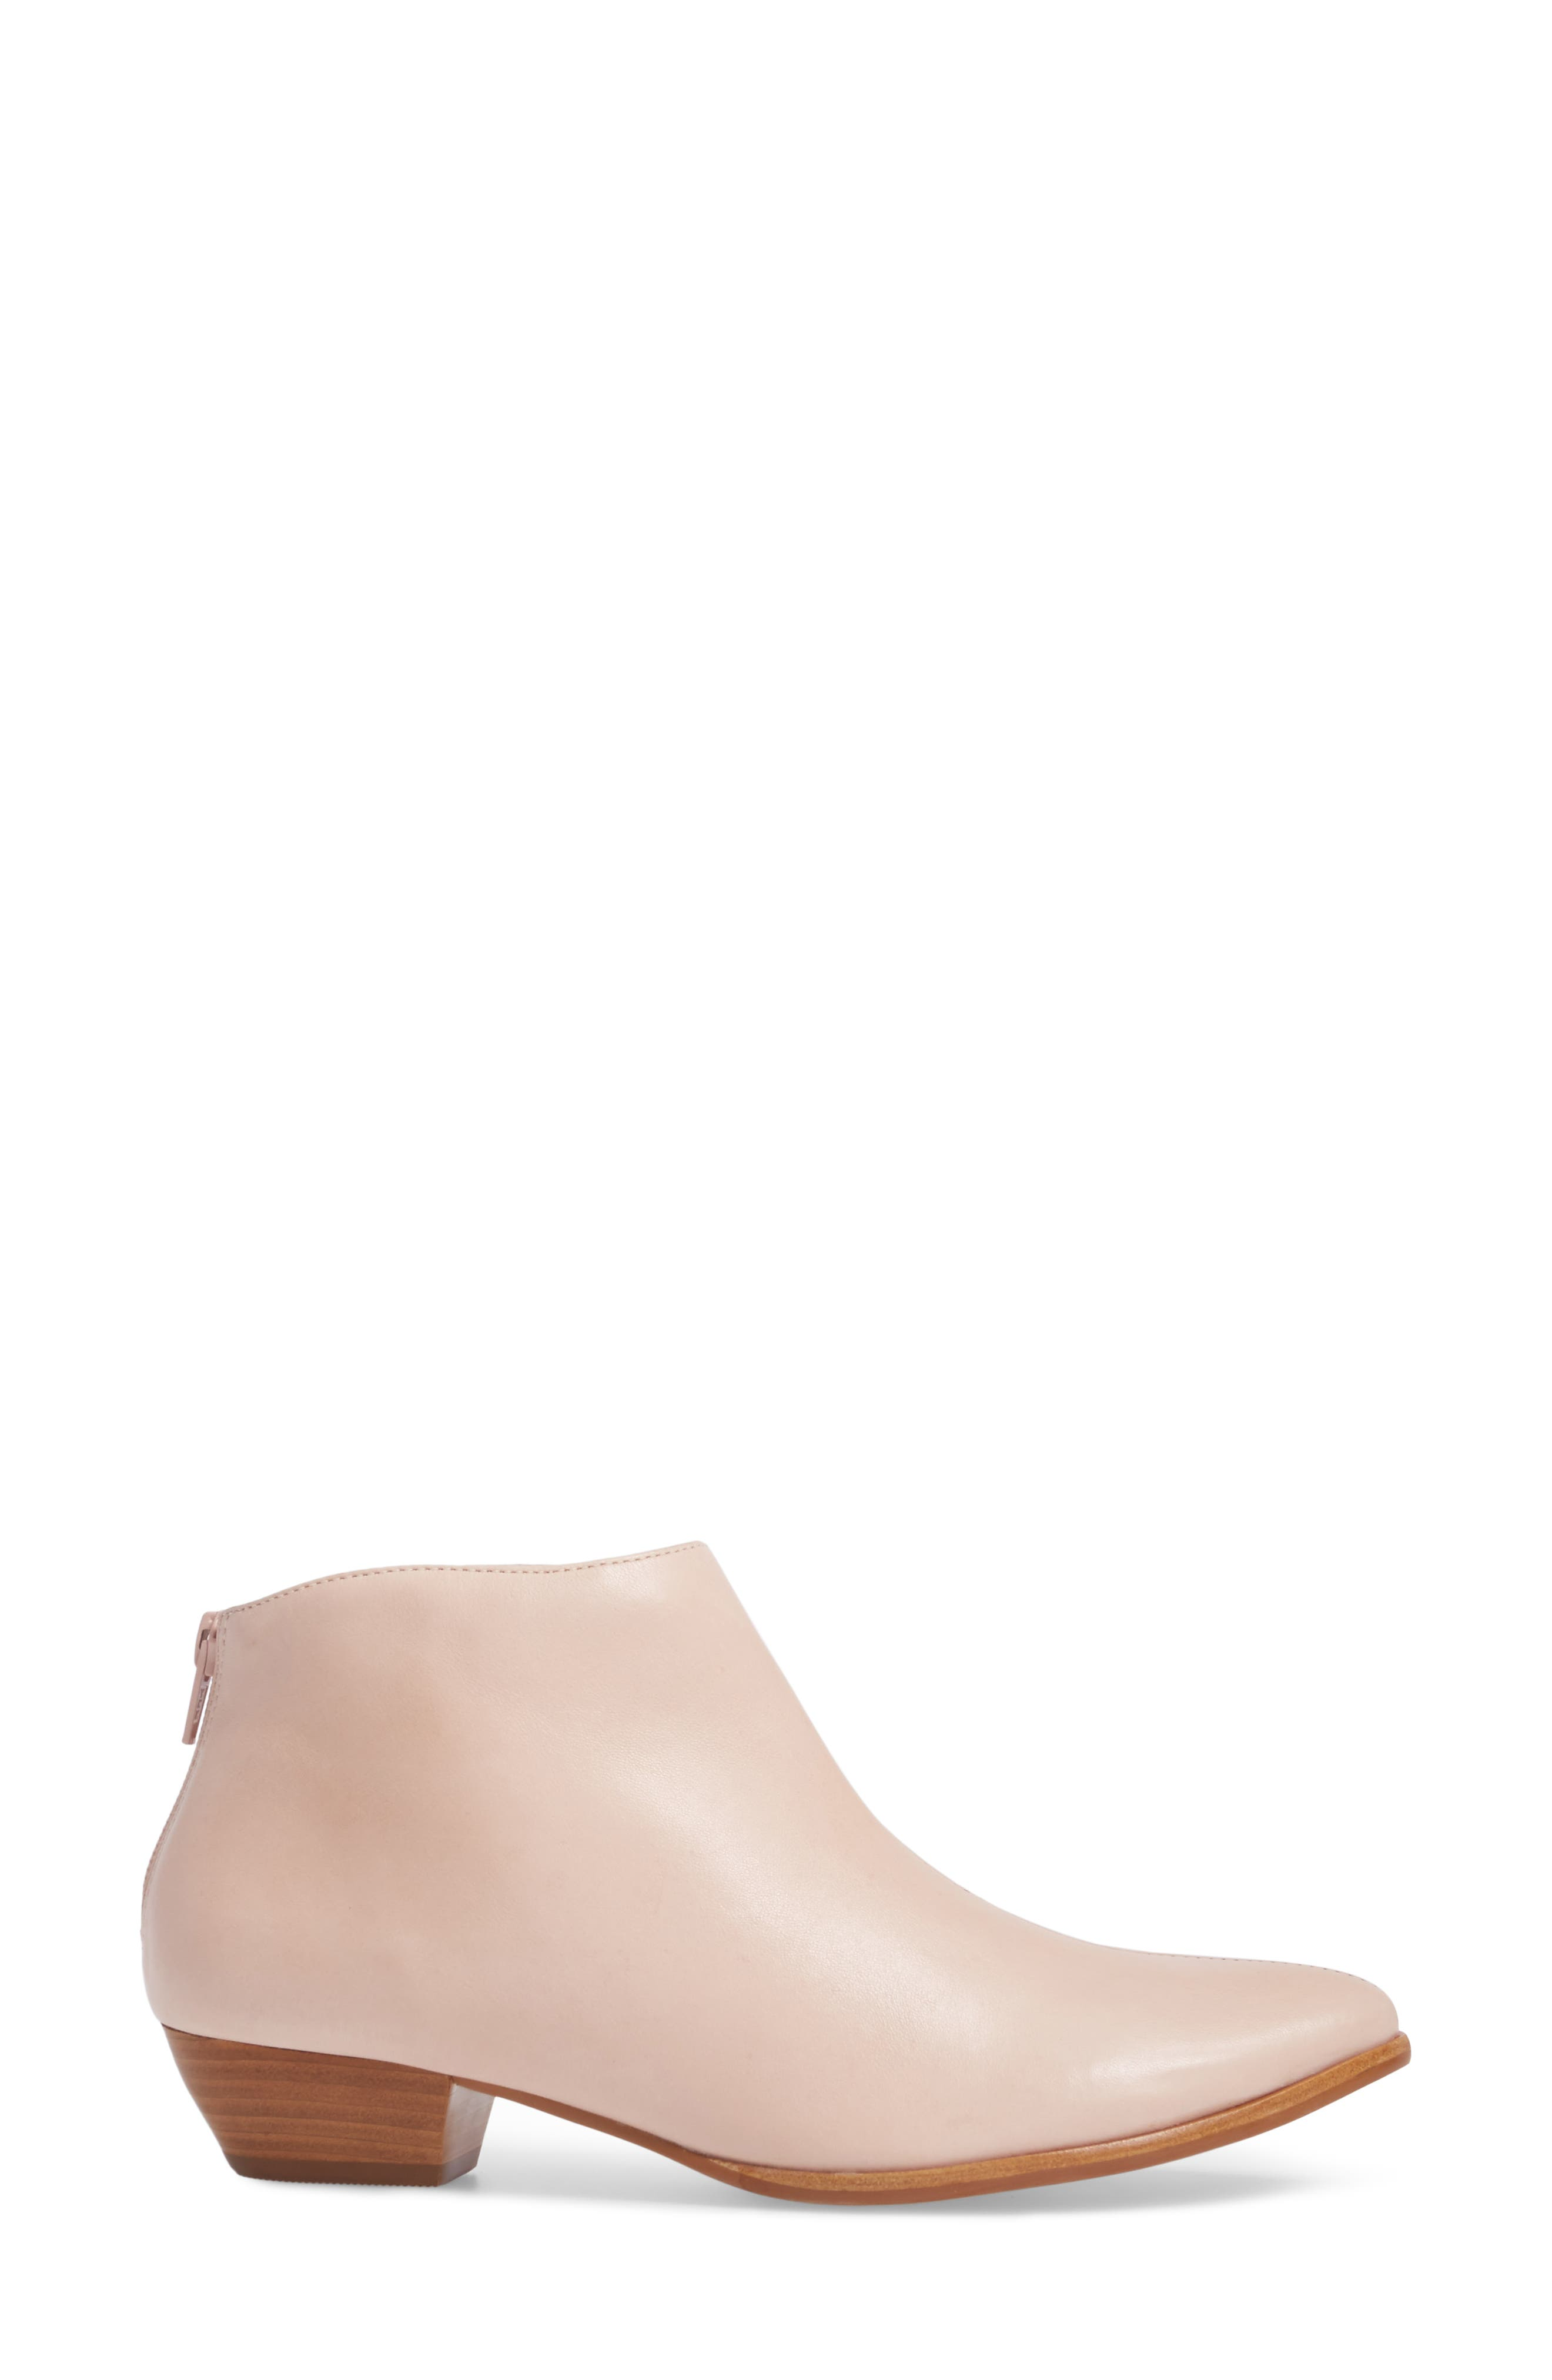 Aida Low Bootie,                             Alternate thumbnail 3, color,                             NUDE LEATHER